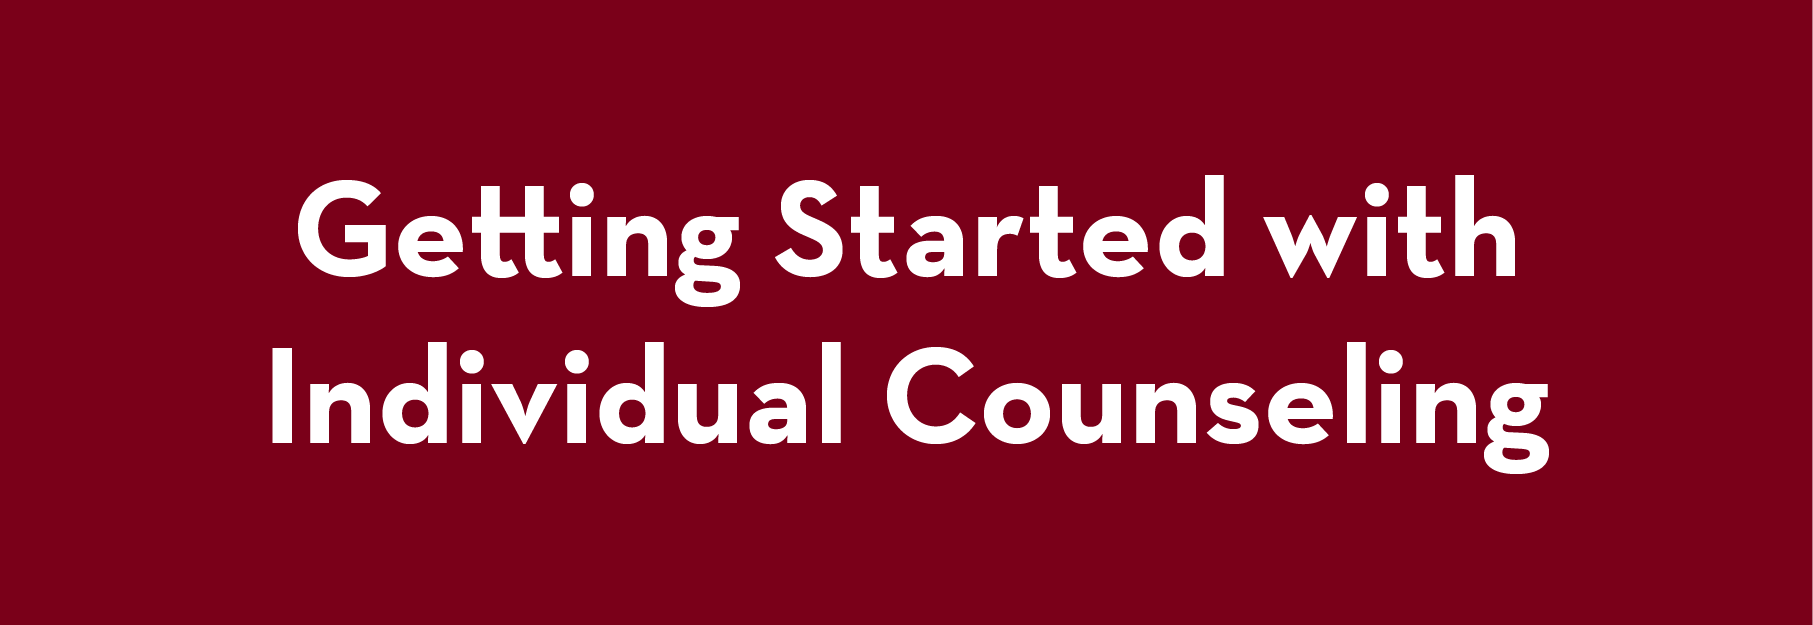 Getting Started with Individual Counseling